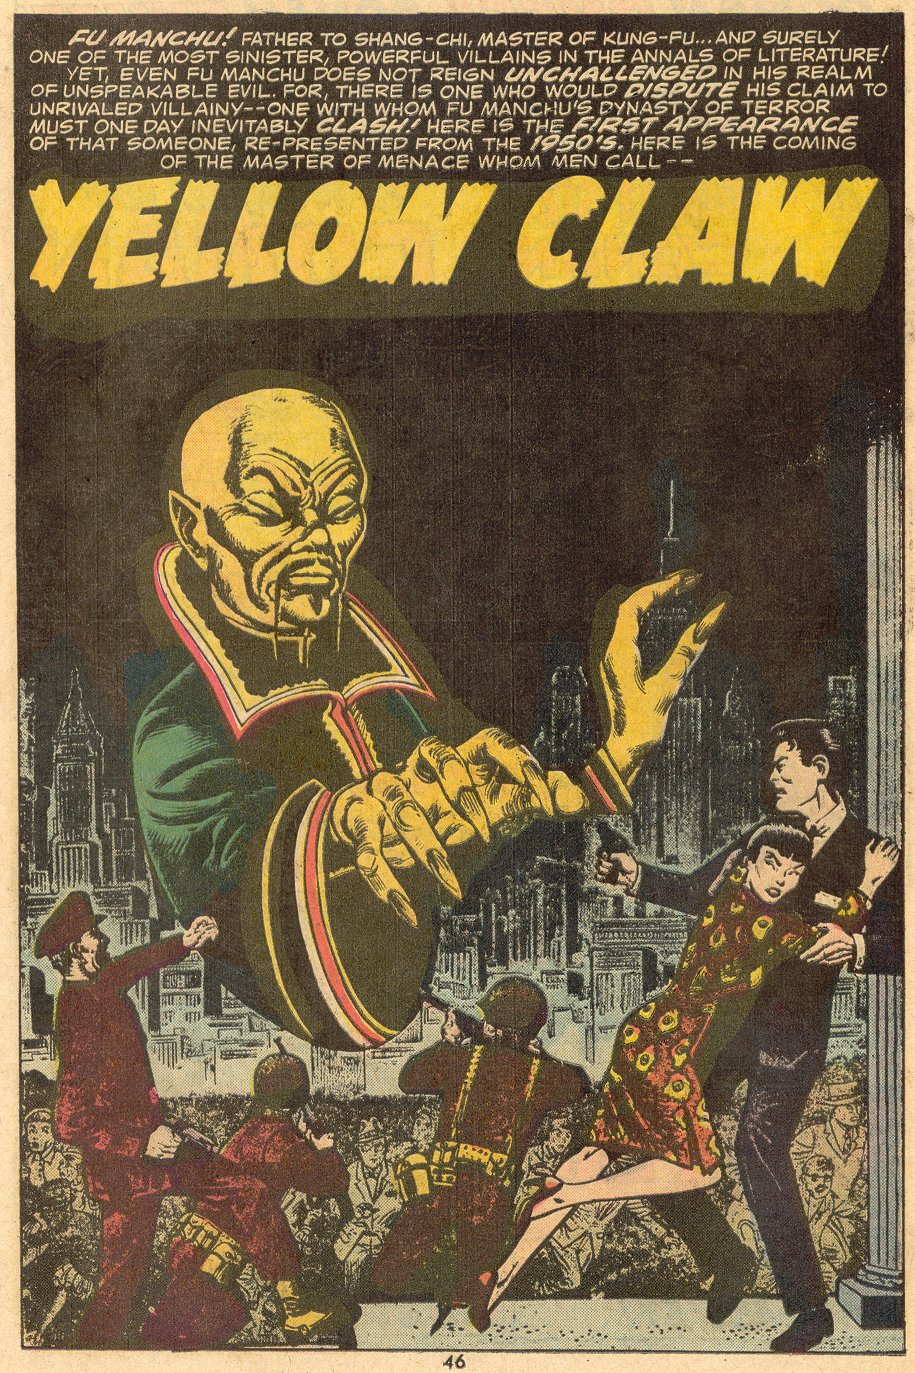 Read online Giant-Size Master of Kung Fu comic -  Issue #1 - 38